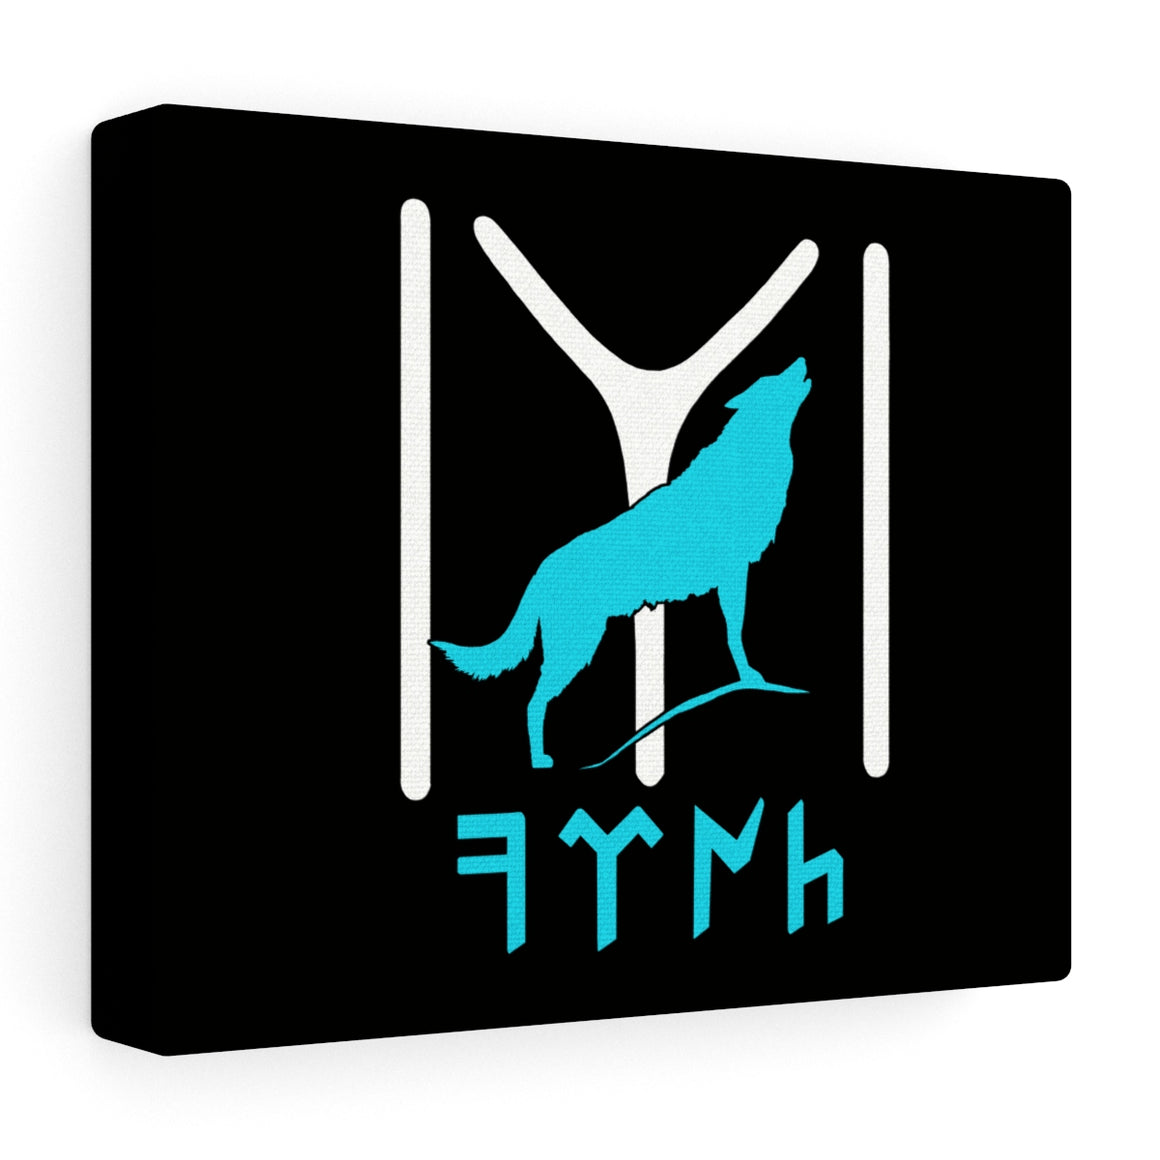 Kayi Tribe - Wolf- Stretched canvas - Art